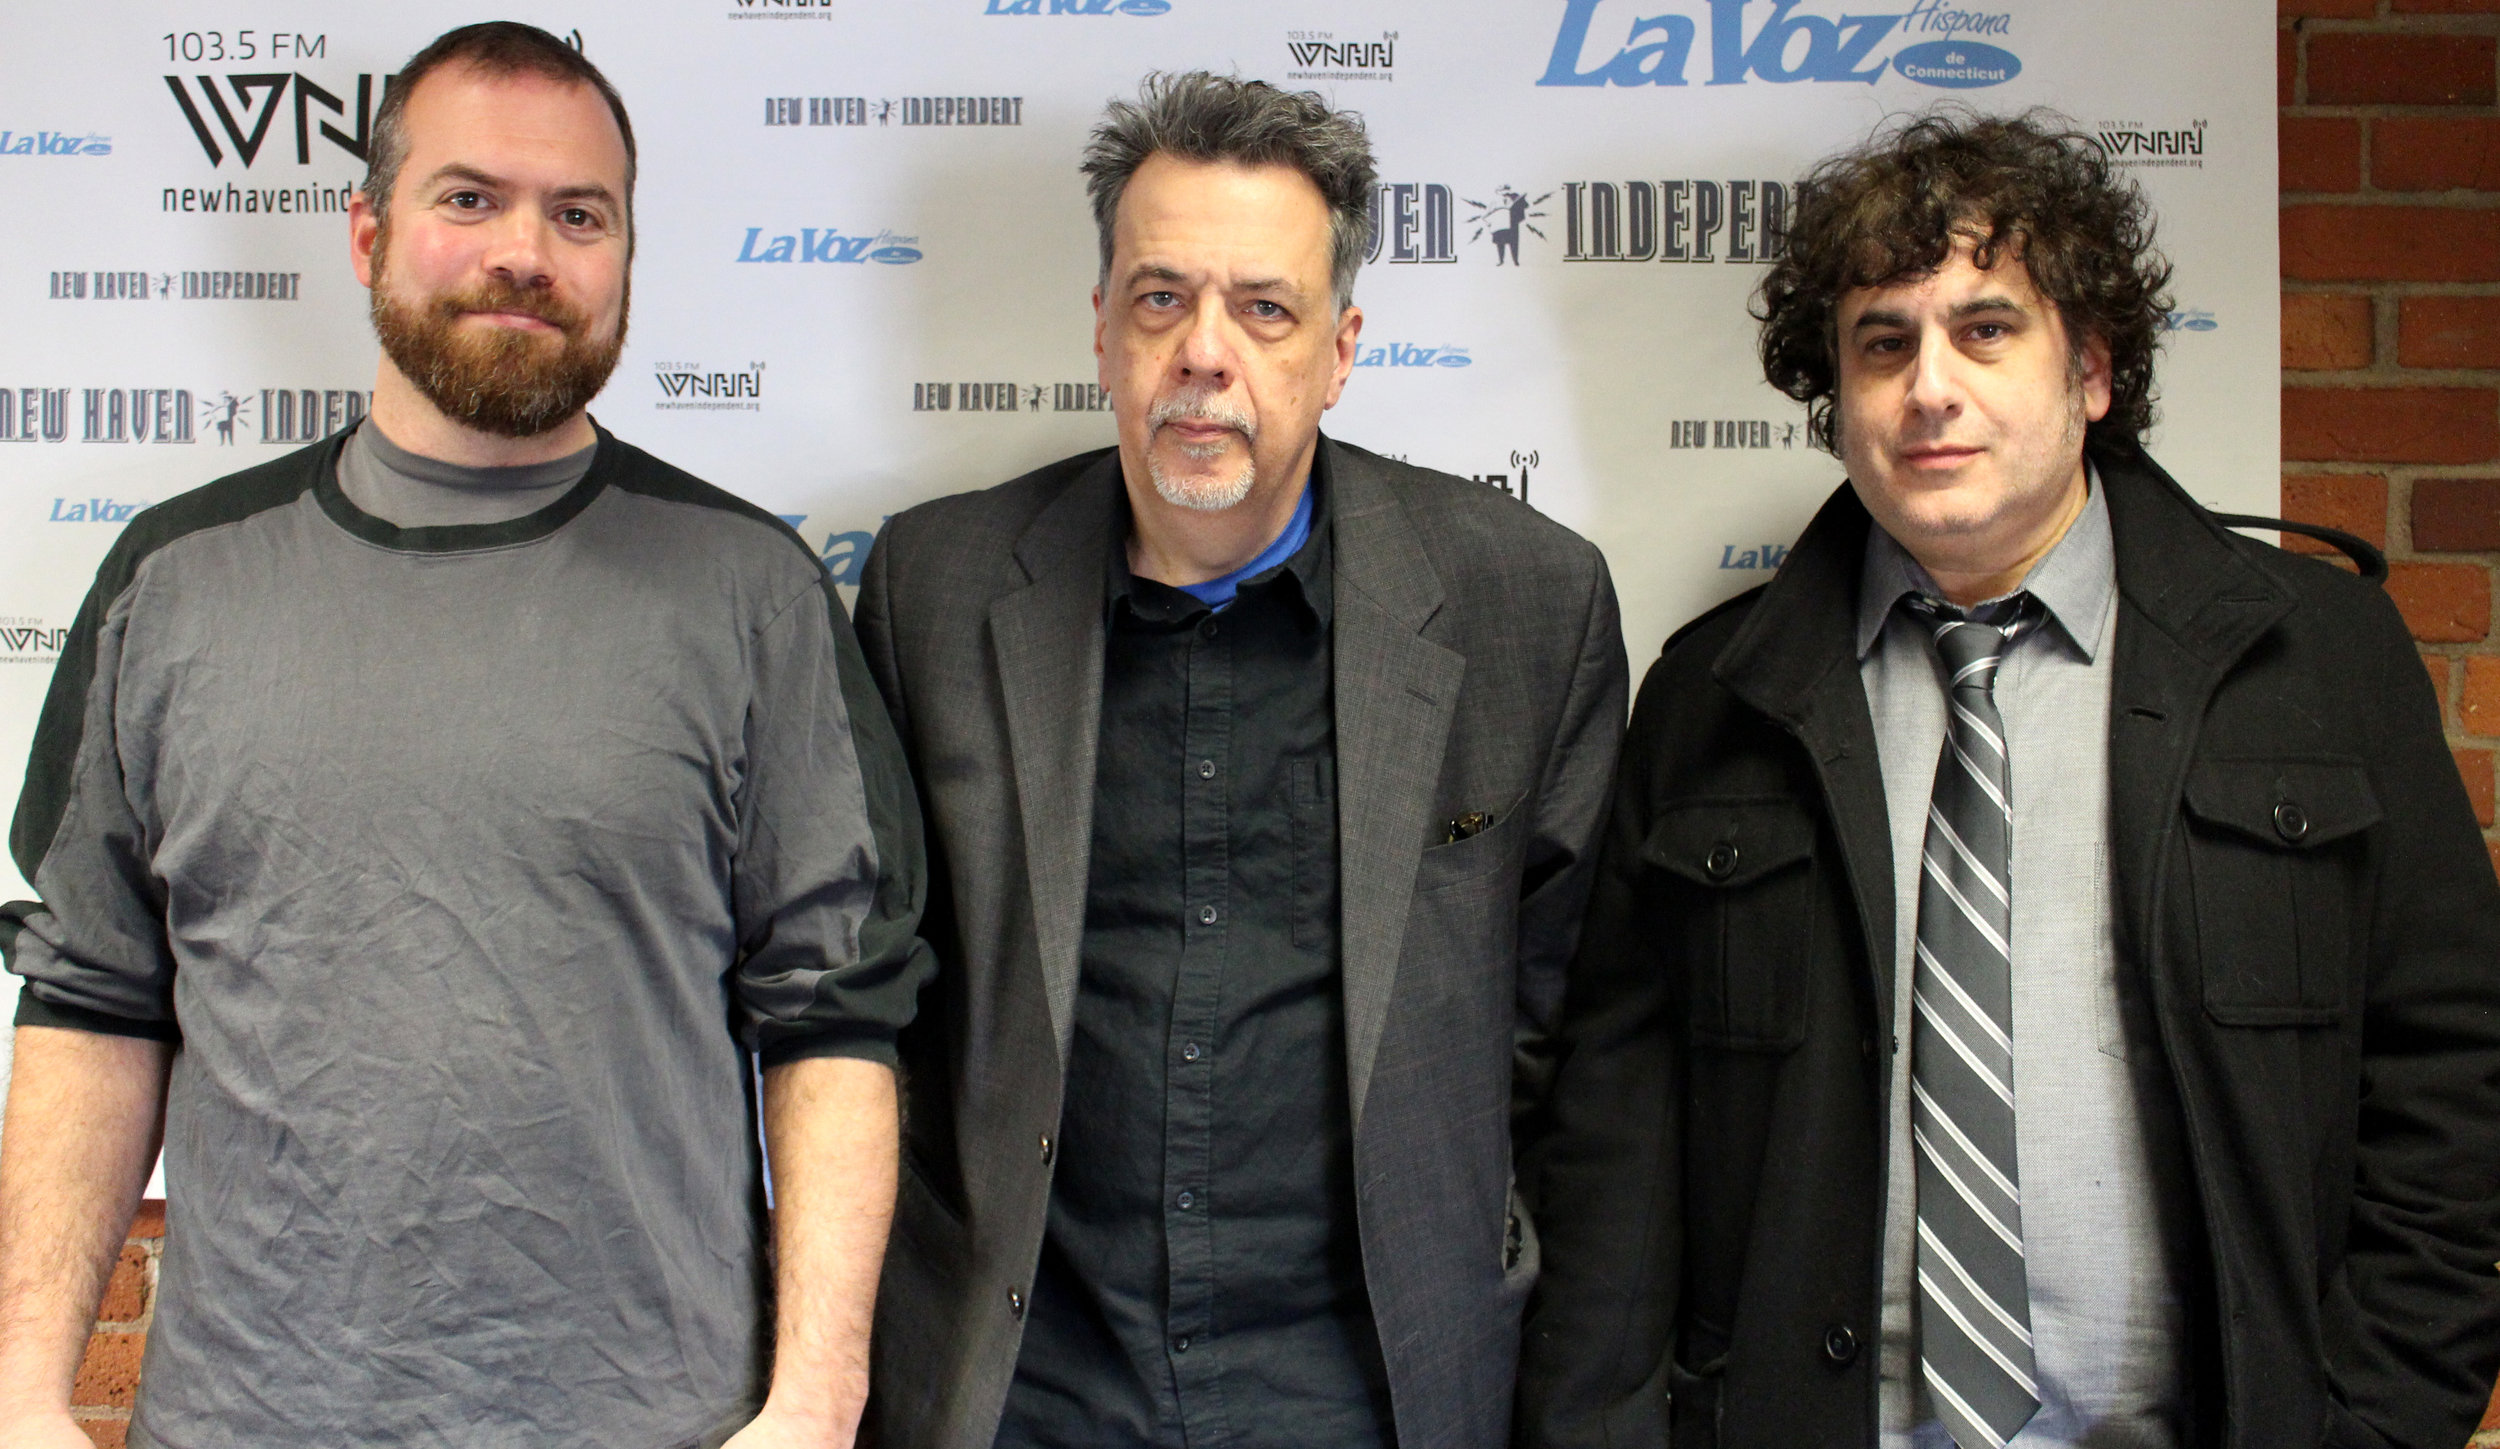 PIZZA, A LOVE STORY director Gorman Bechard (center) and producers Colin Caplan (left) and Dean Falcone.